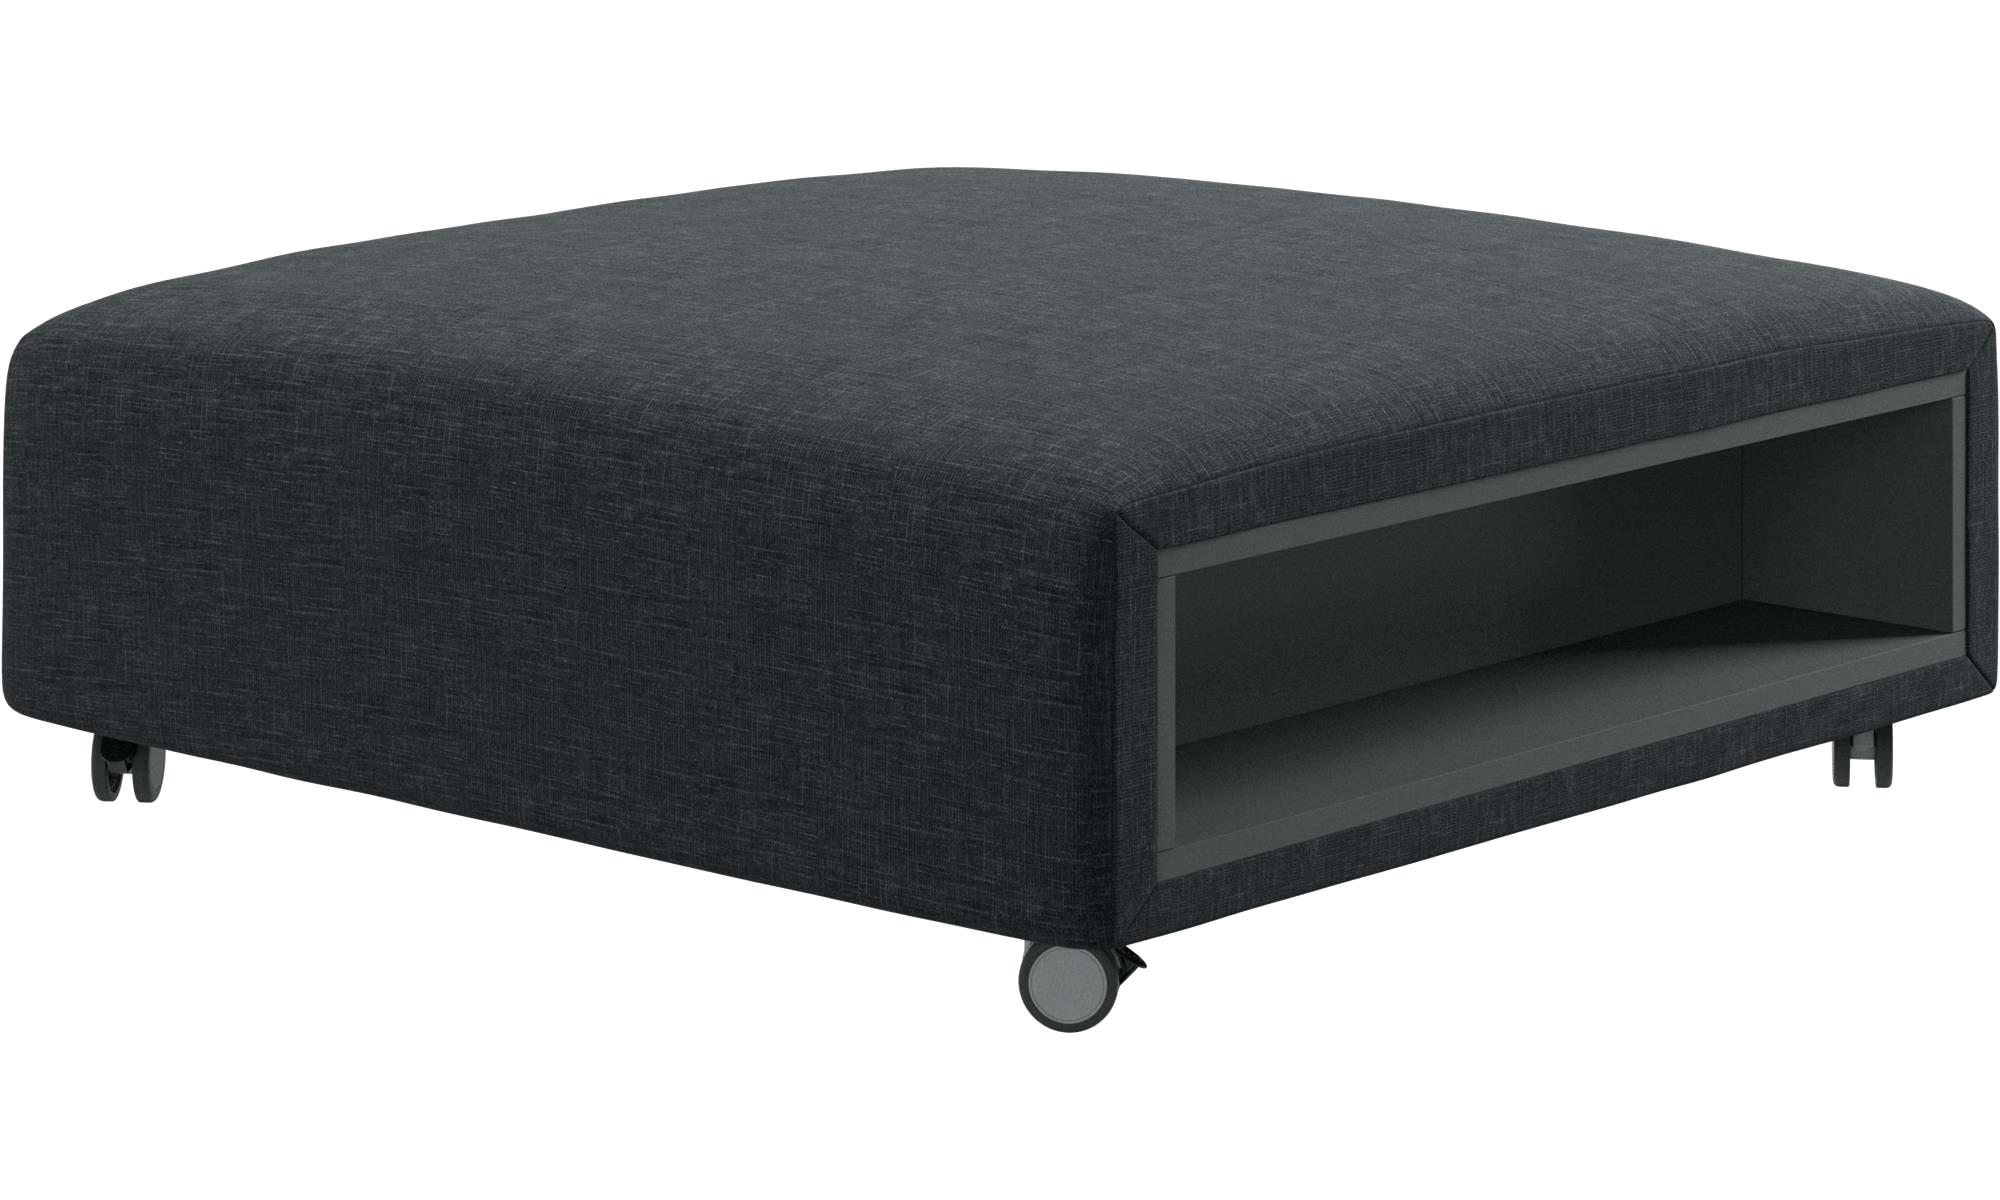 Popular Ottoman With Wheels Ottomans Pouf On Wheels With Storage Left And For Ottomans With Wheels (View 12 of 20)